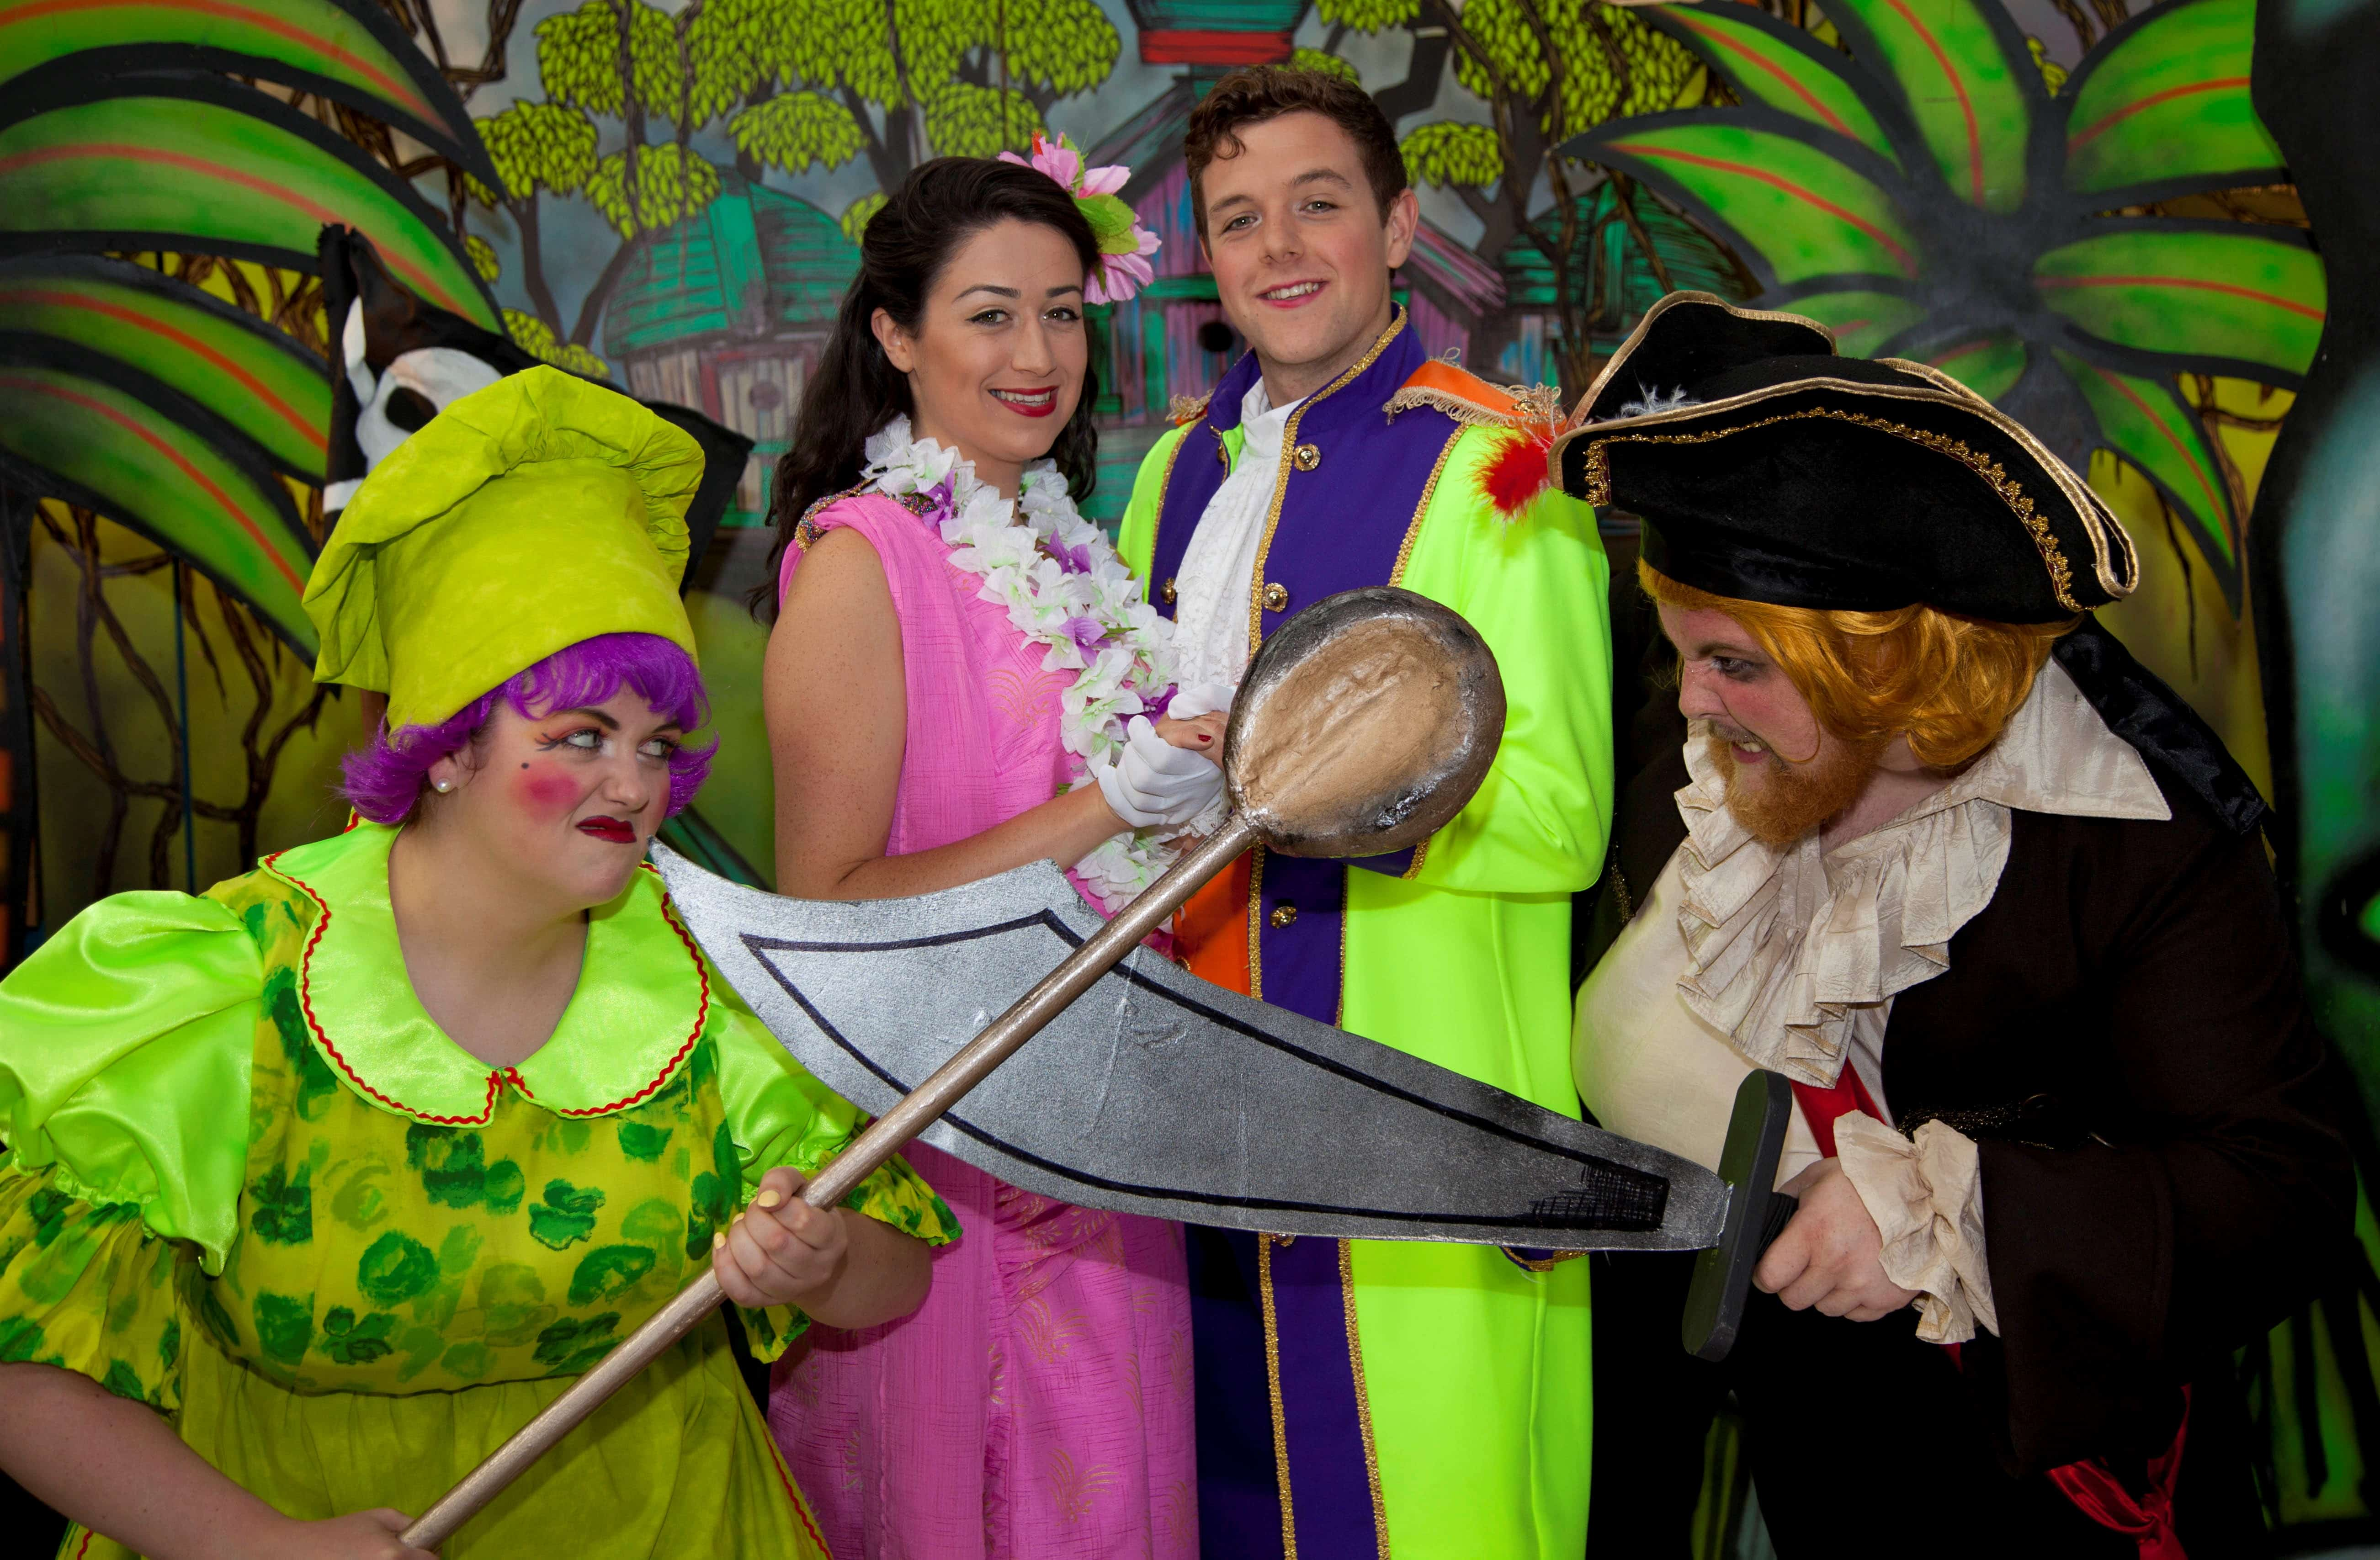 Summer panto brings sunshine to young patients at Watford General